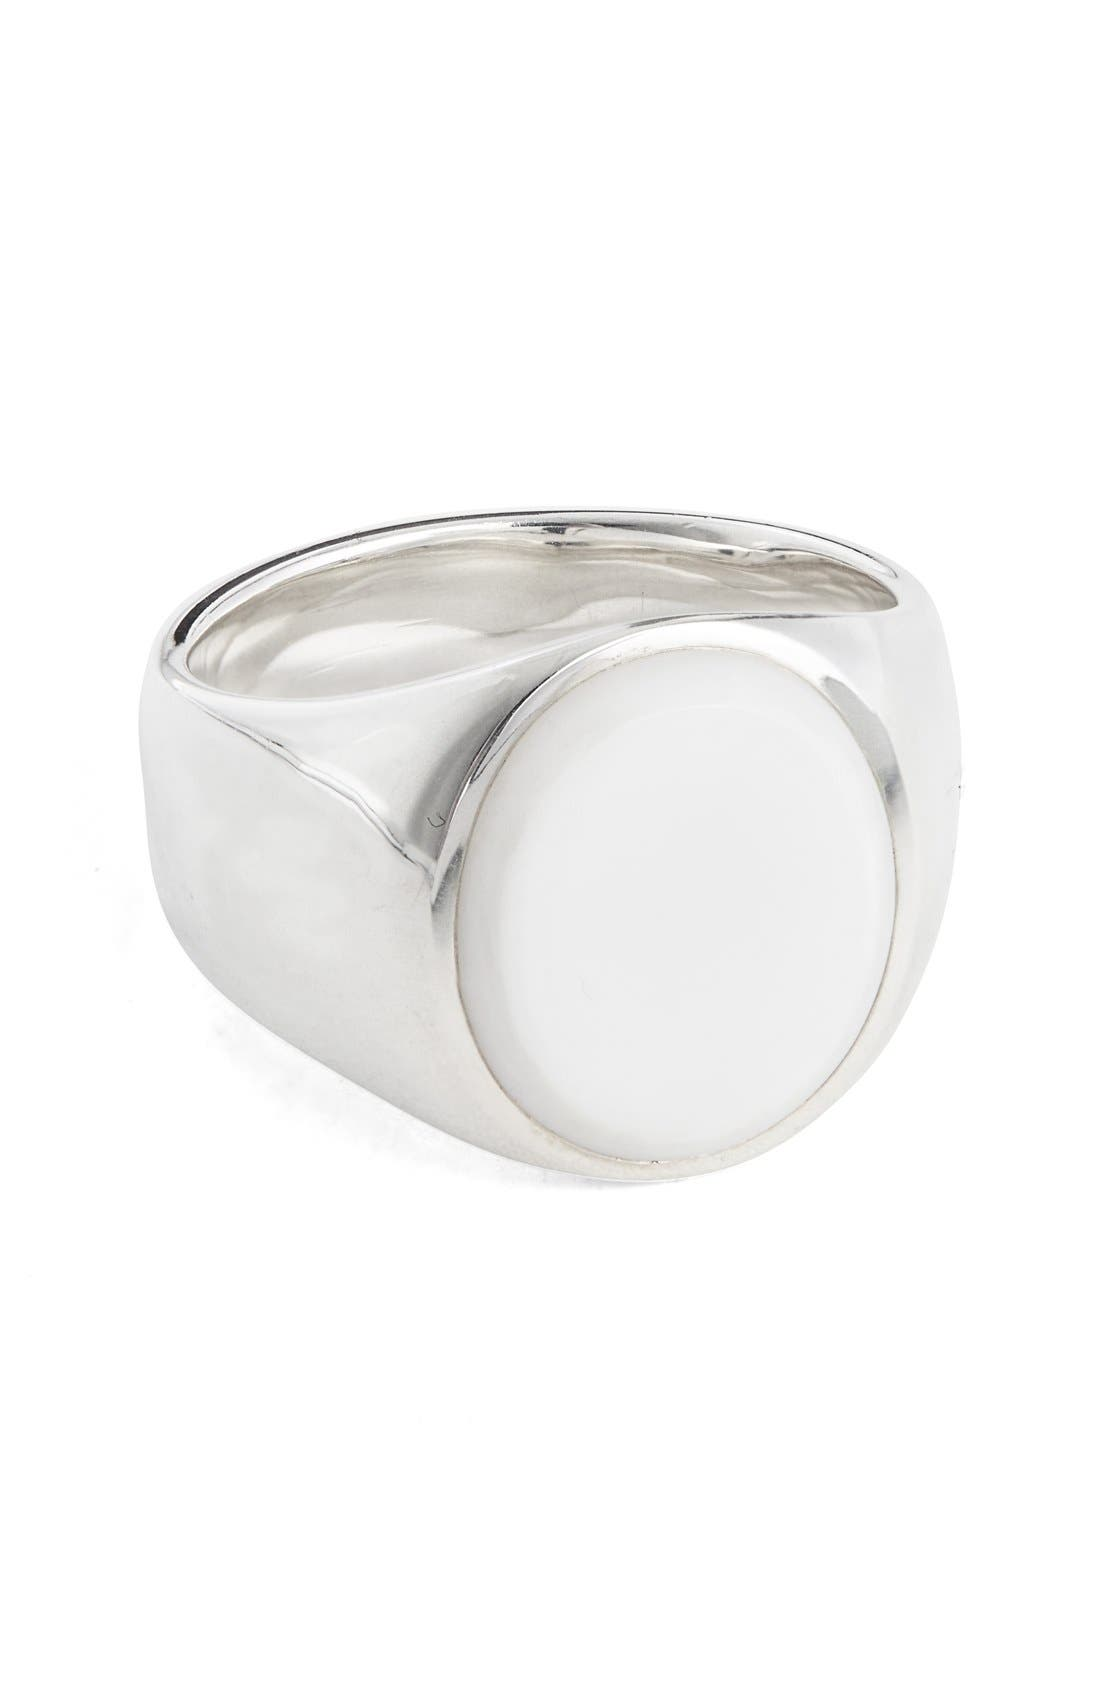 Alternate Image 1 Selected - Tom Wood 'Patriot Collection' Oval White Agate Signet Ring